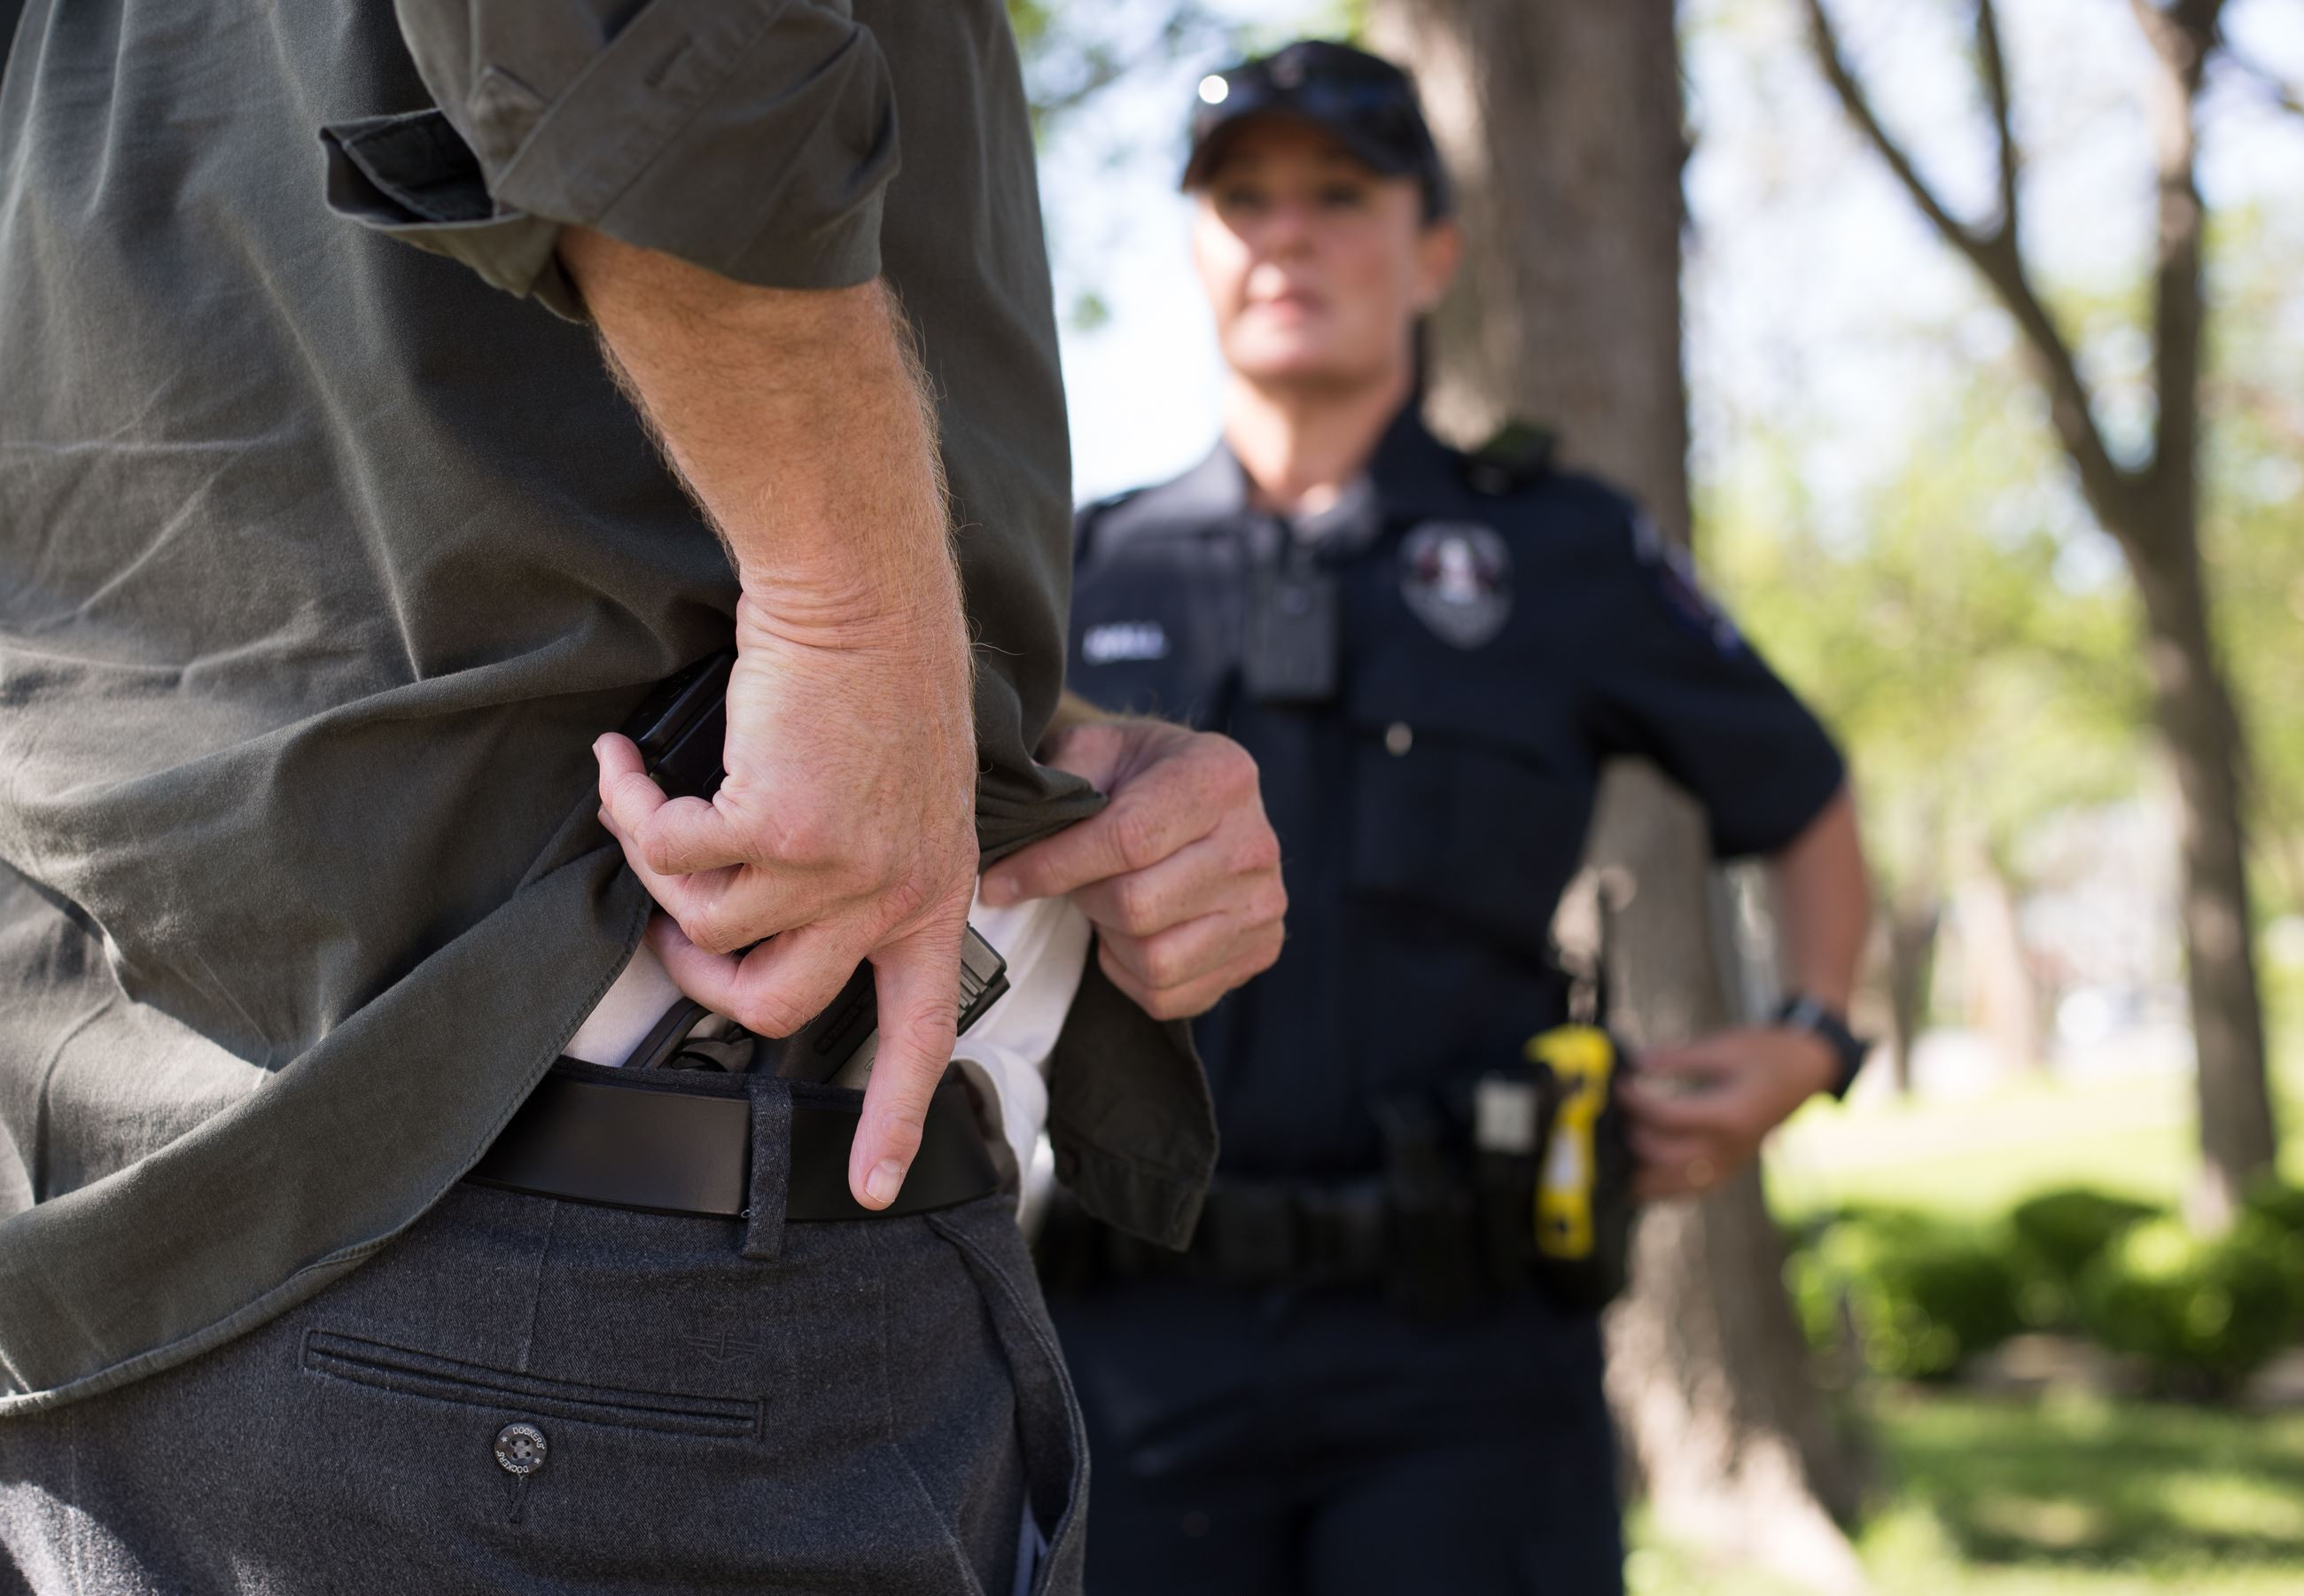 Calibre Press Legally Justified Image